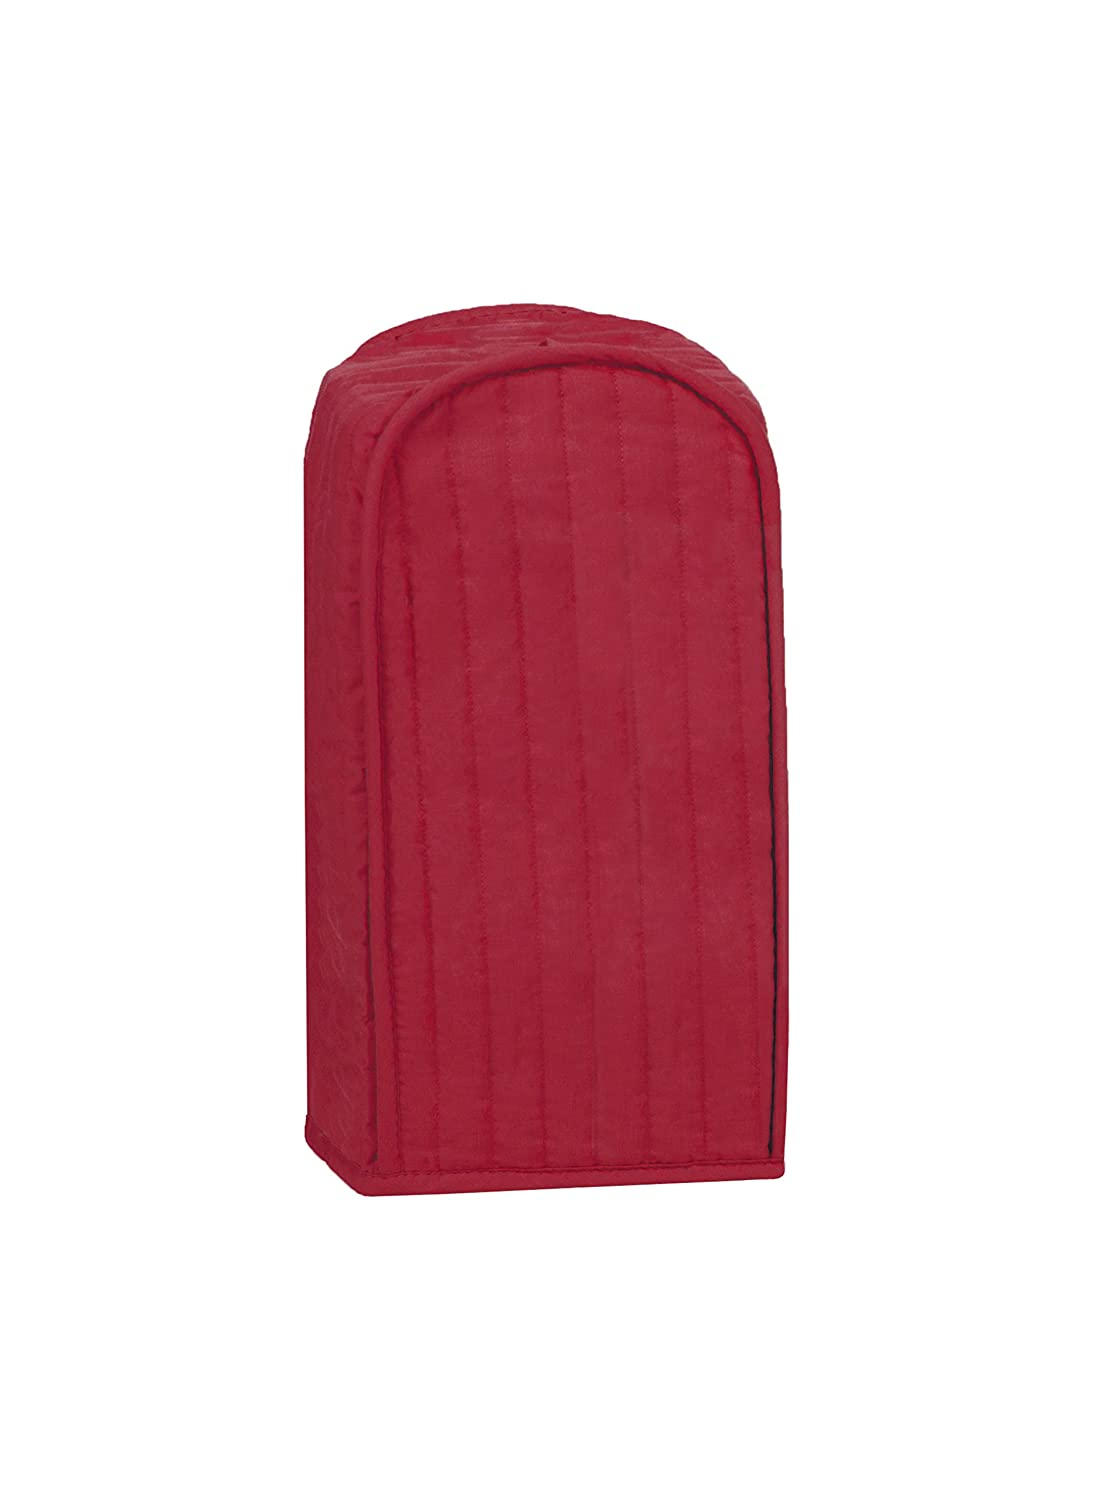 RITZ Polyester / Cotton Quilted Blender Appliance Cover, Dust and Fingerprint Protection, Machine Washable, Paprika Red